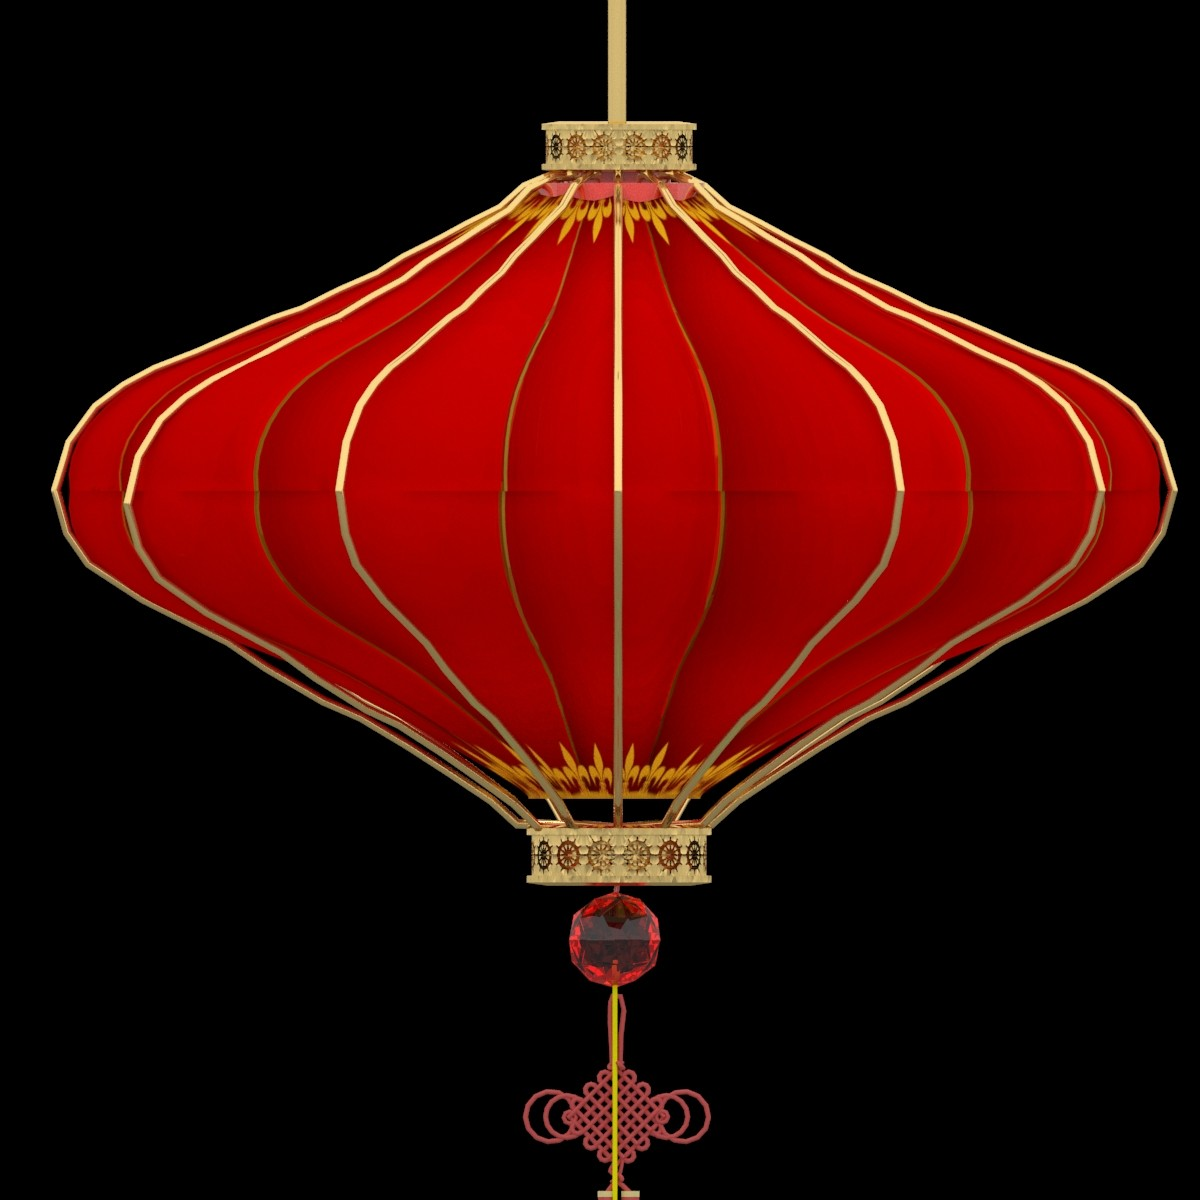 chinese_decorative_lamp1.jpg